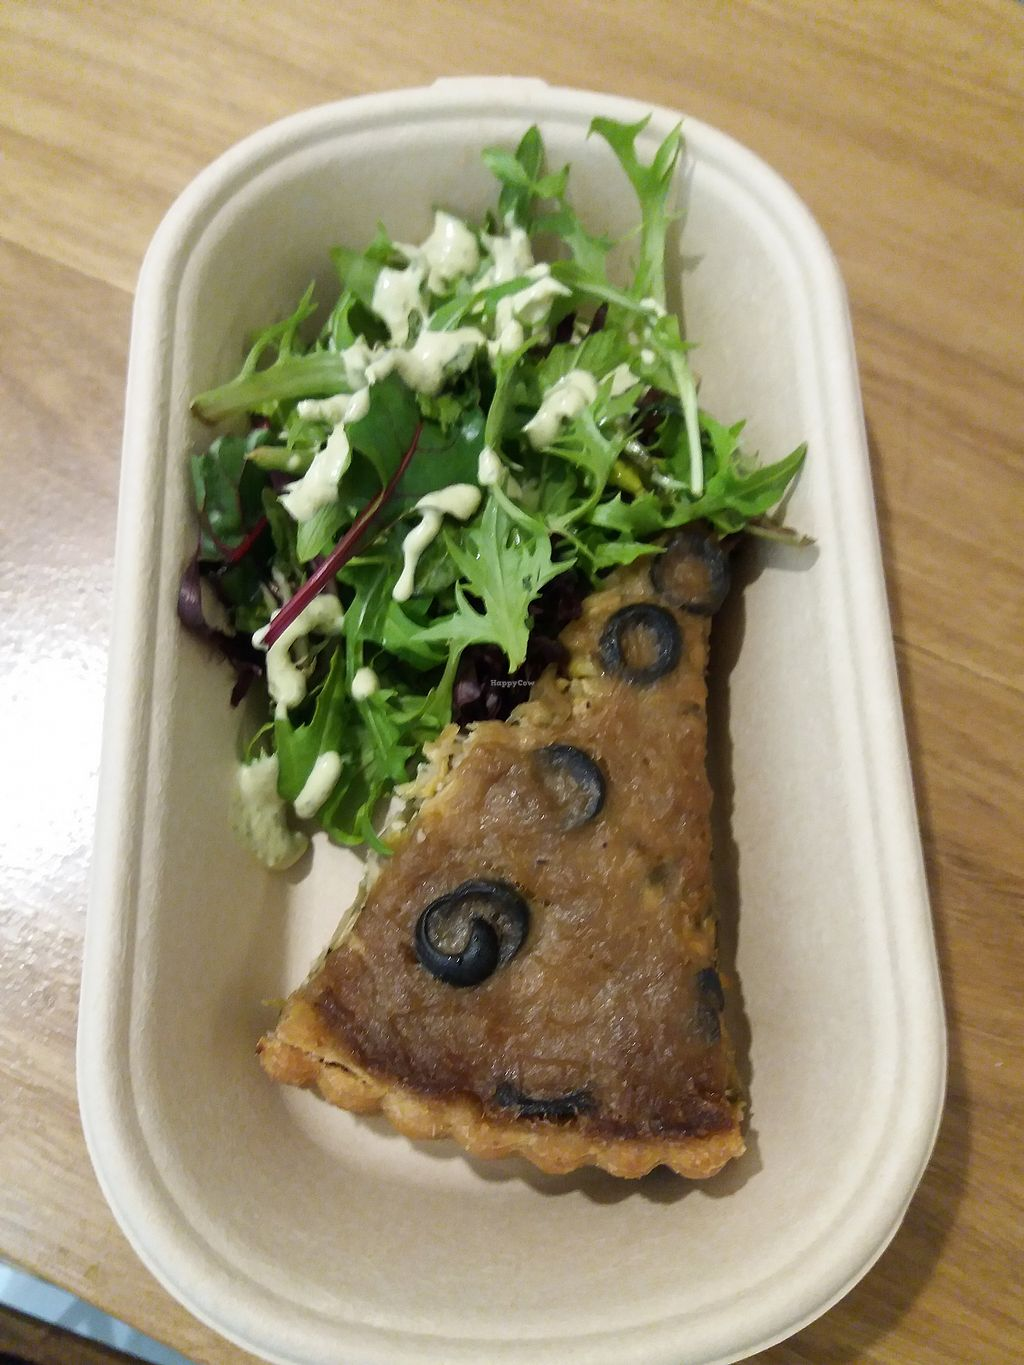 """Photo of Iku Wholefood Kitchen - Greenwood Plaza  by <a href=""""/members/profile/veganvirtues"""">veganvirtues</a> <br/>Caramilised leek, onion and chick pea tart <br/> September 19, 2017  - <a href='/contact/abuse/image/23181/305959'>Report</a>"""